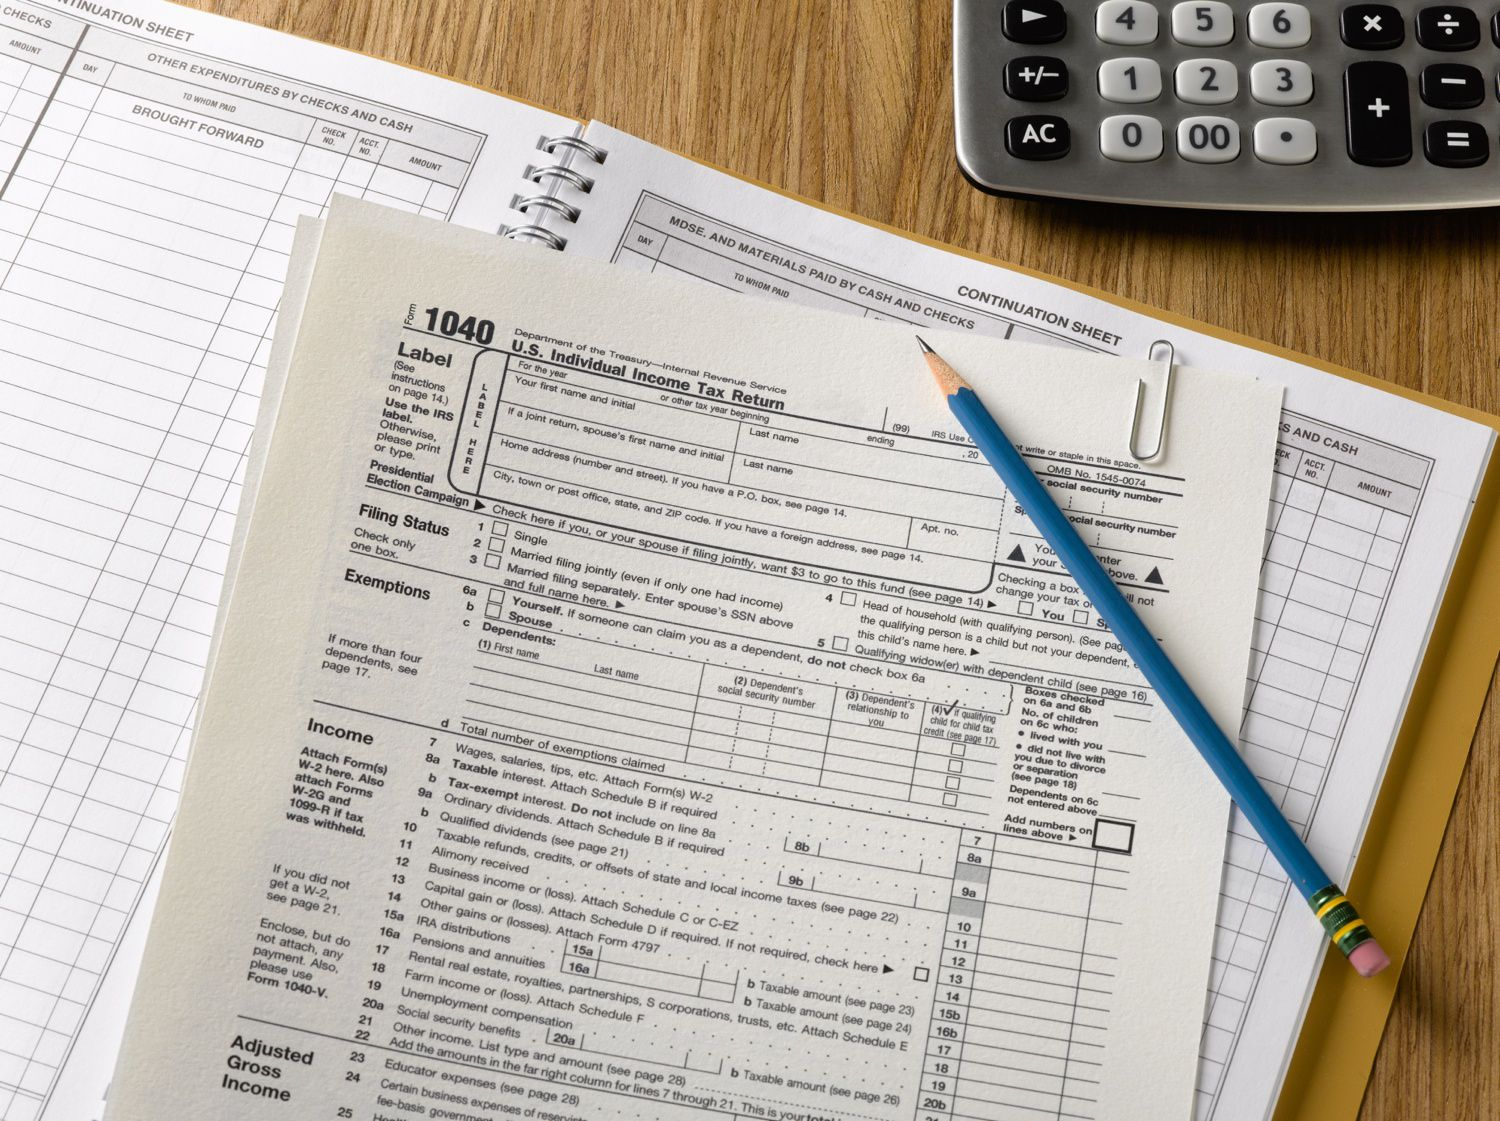 What Forms Do I Need To File My Taxes